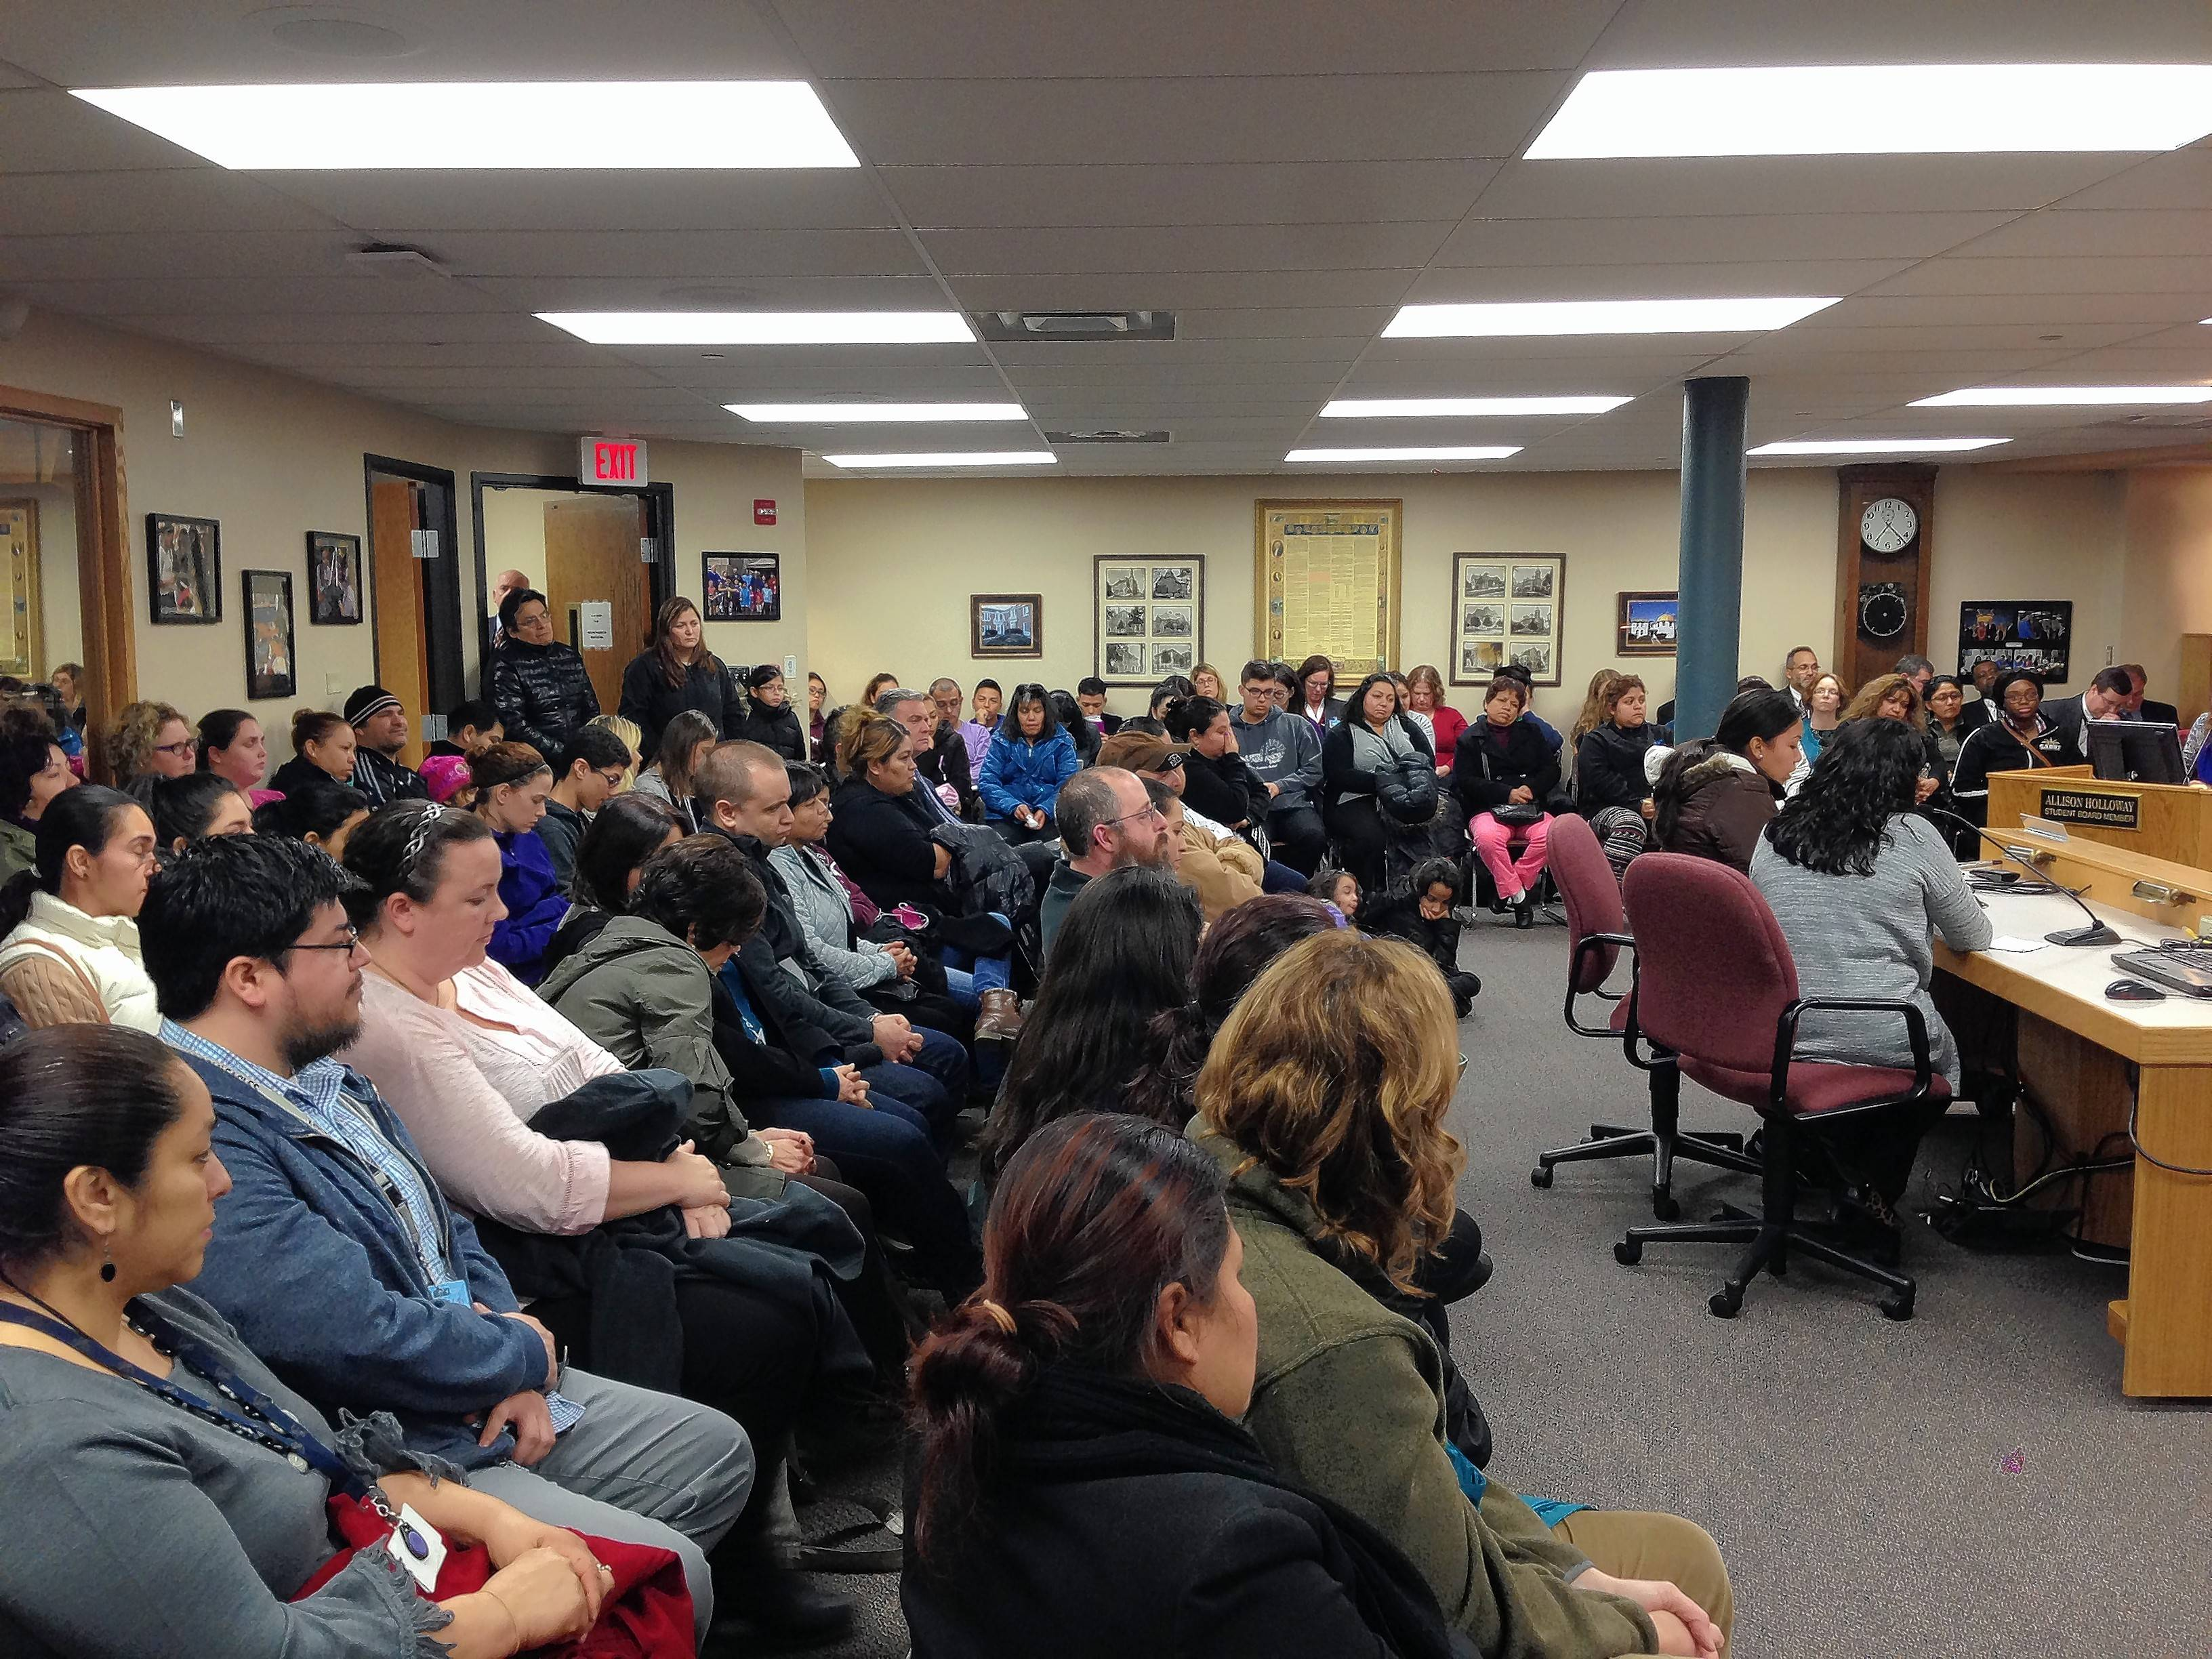 U-46 OKs new boundaries despite Latino parents' objection